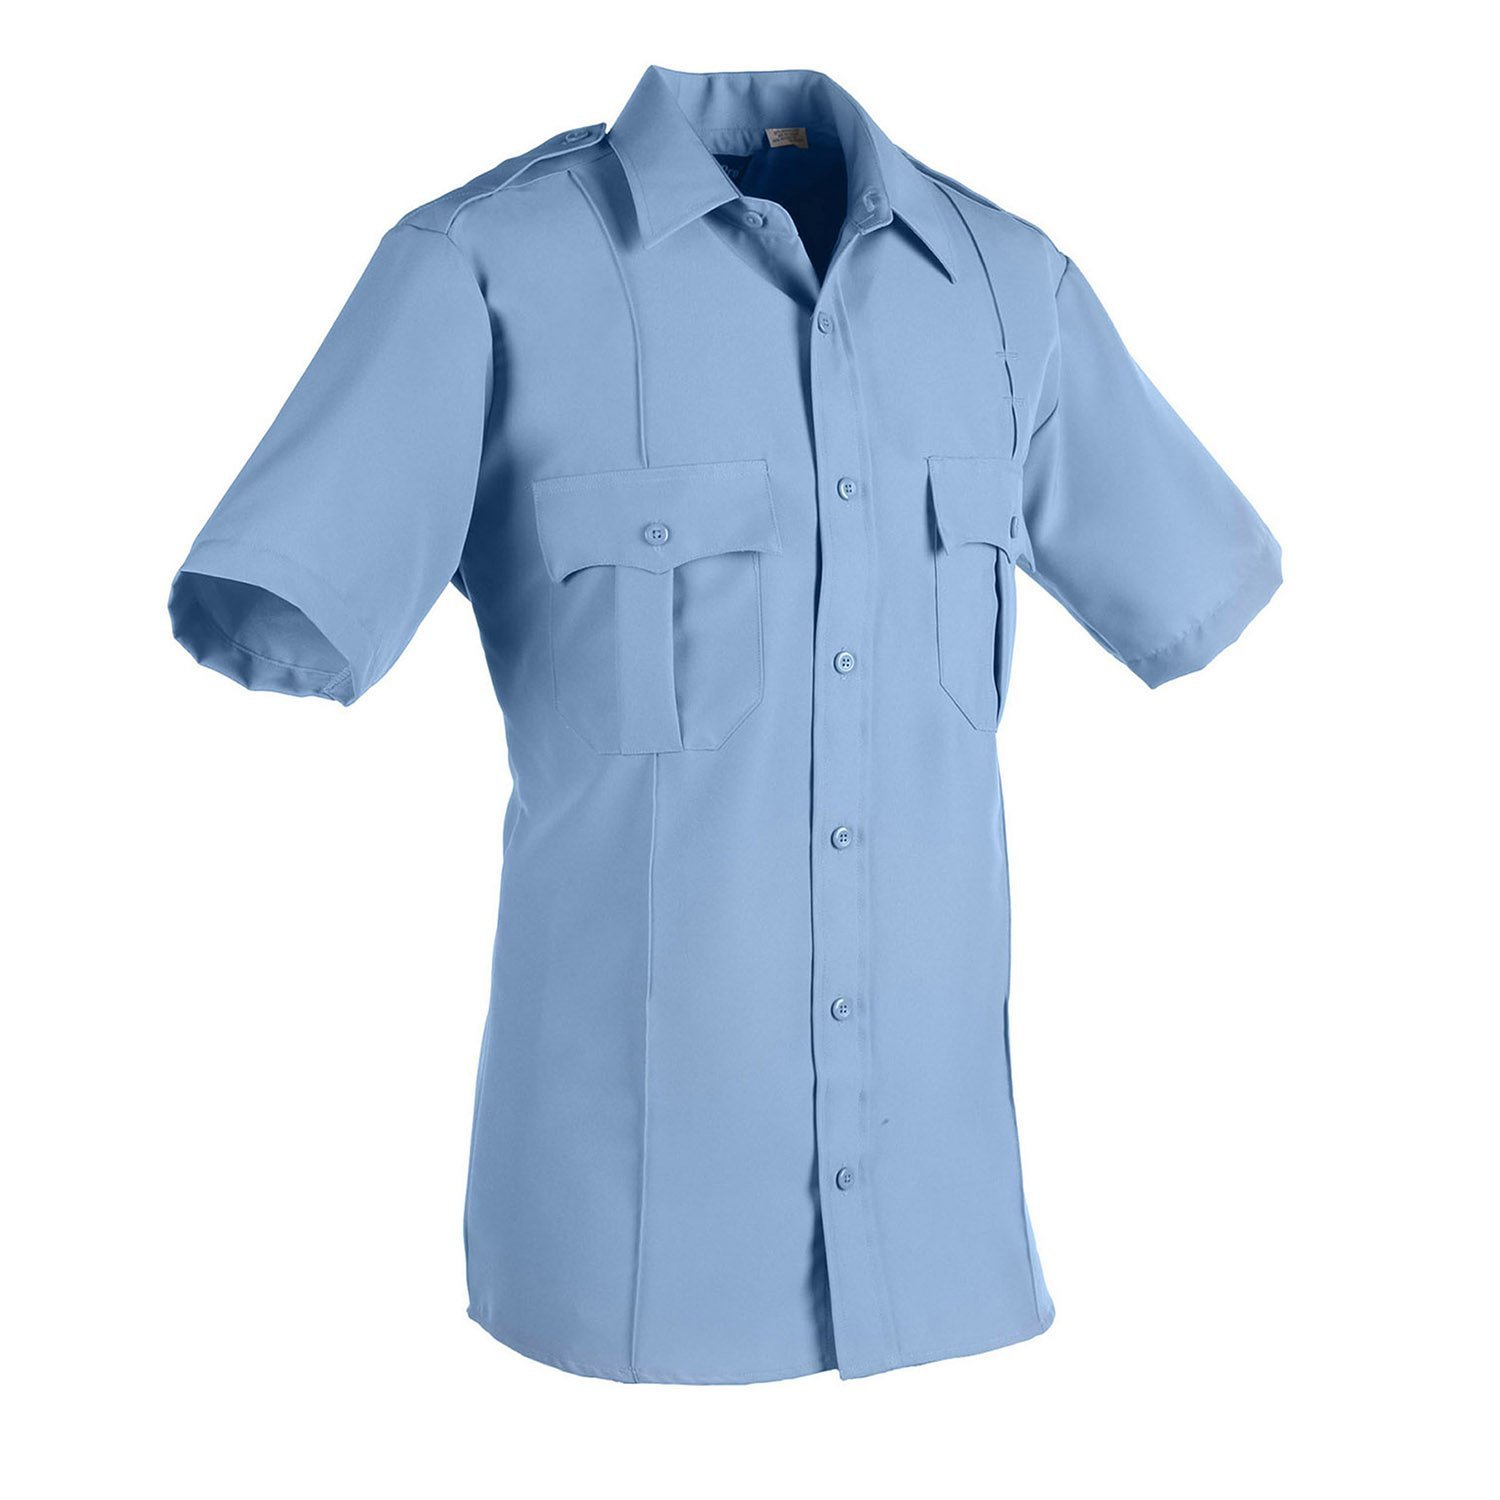 0013b24a546 Amazon.com  America Wear Men s Light Blue Short Sleeves Security Shirt  (Small)  Clothing